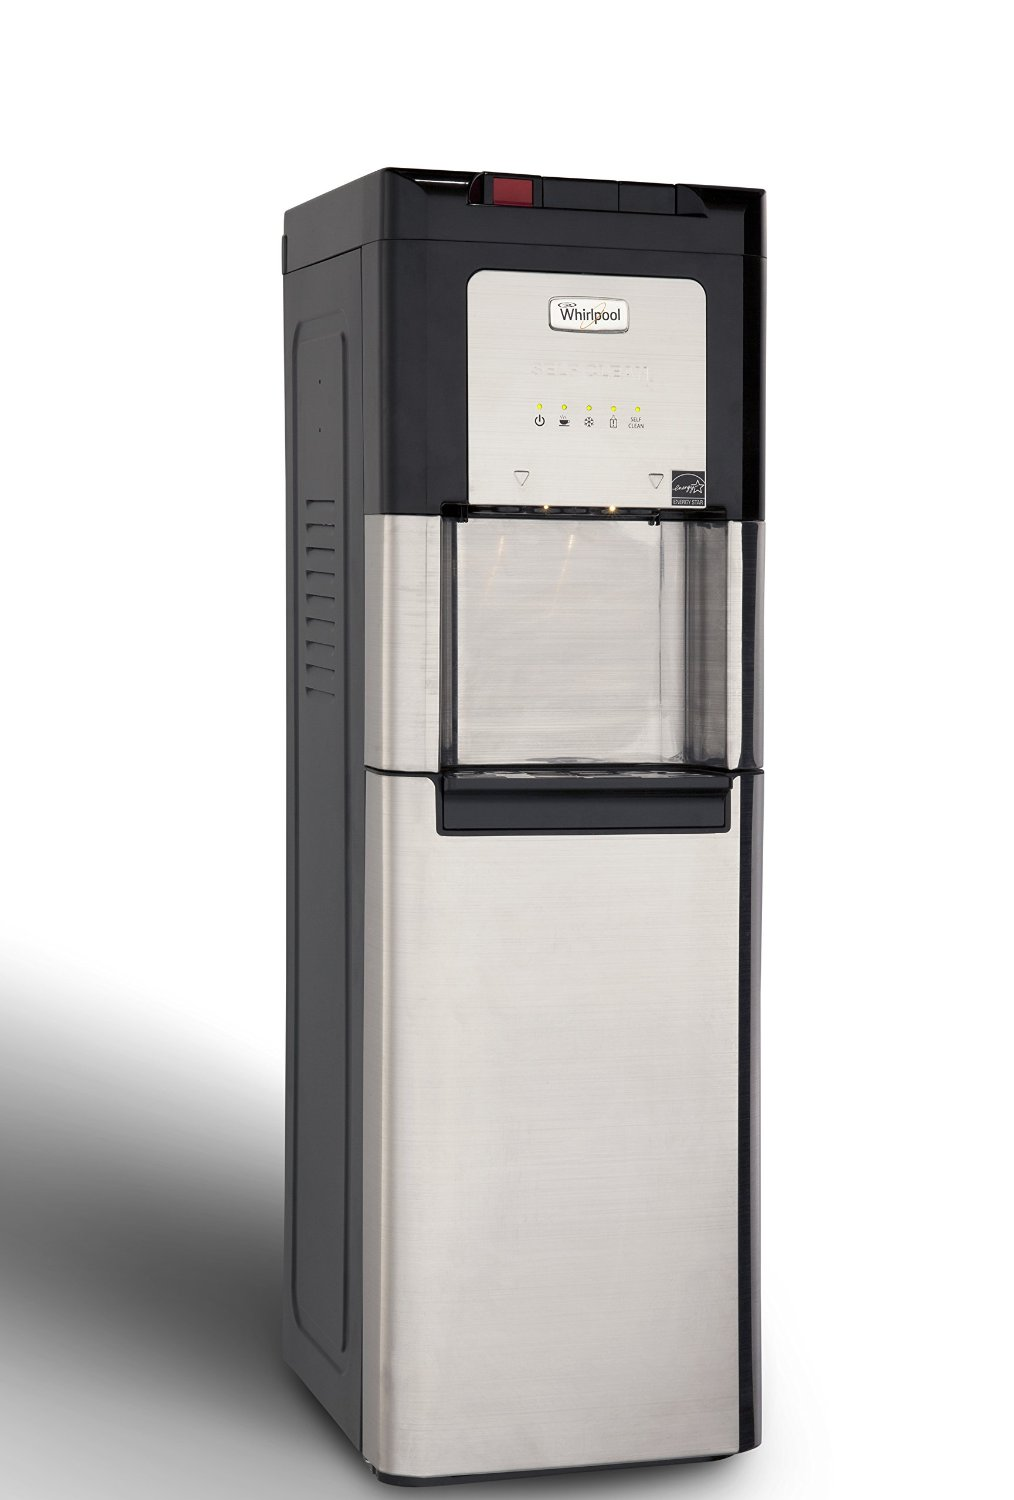 Whirlpool 218LIECH-SCSSFP5W Self Cleaning, Bottom Loading Commercial Water Cooler with LED Indicators